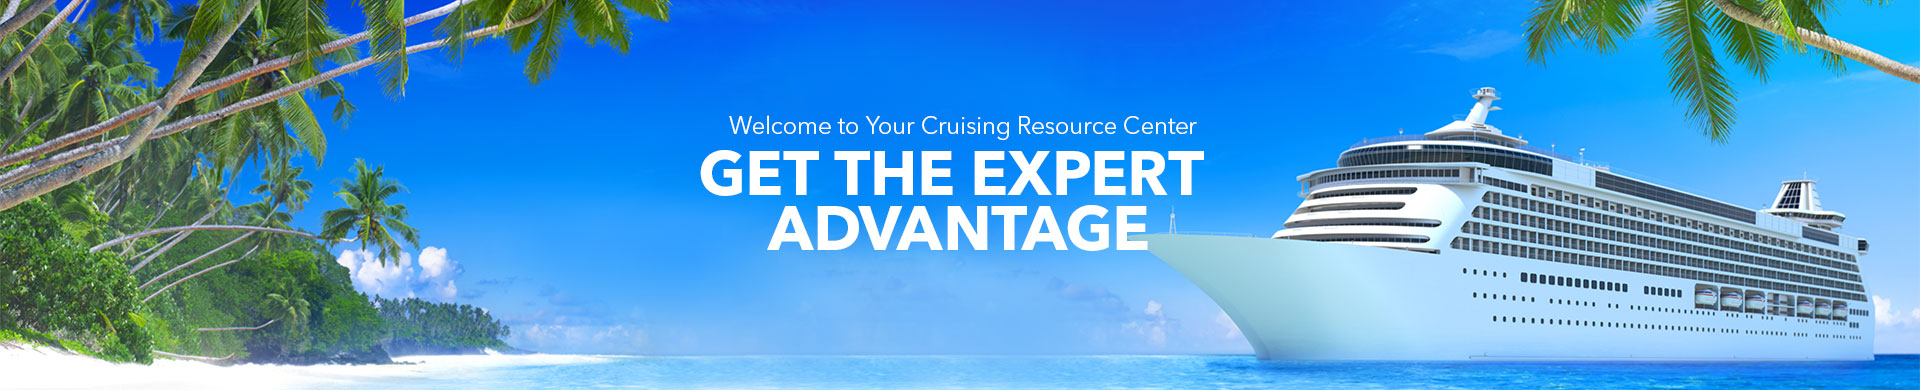 Cruise Resource Center